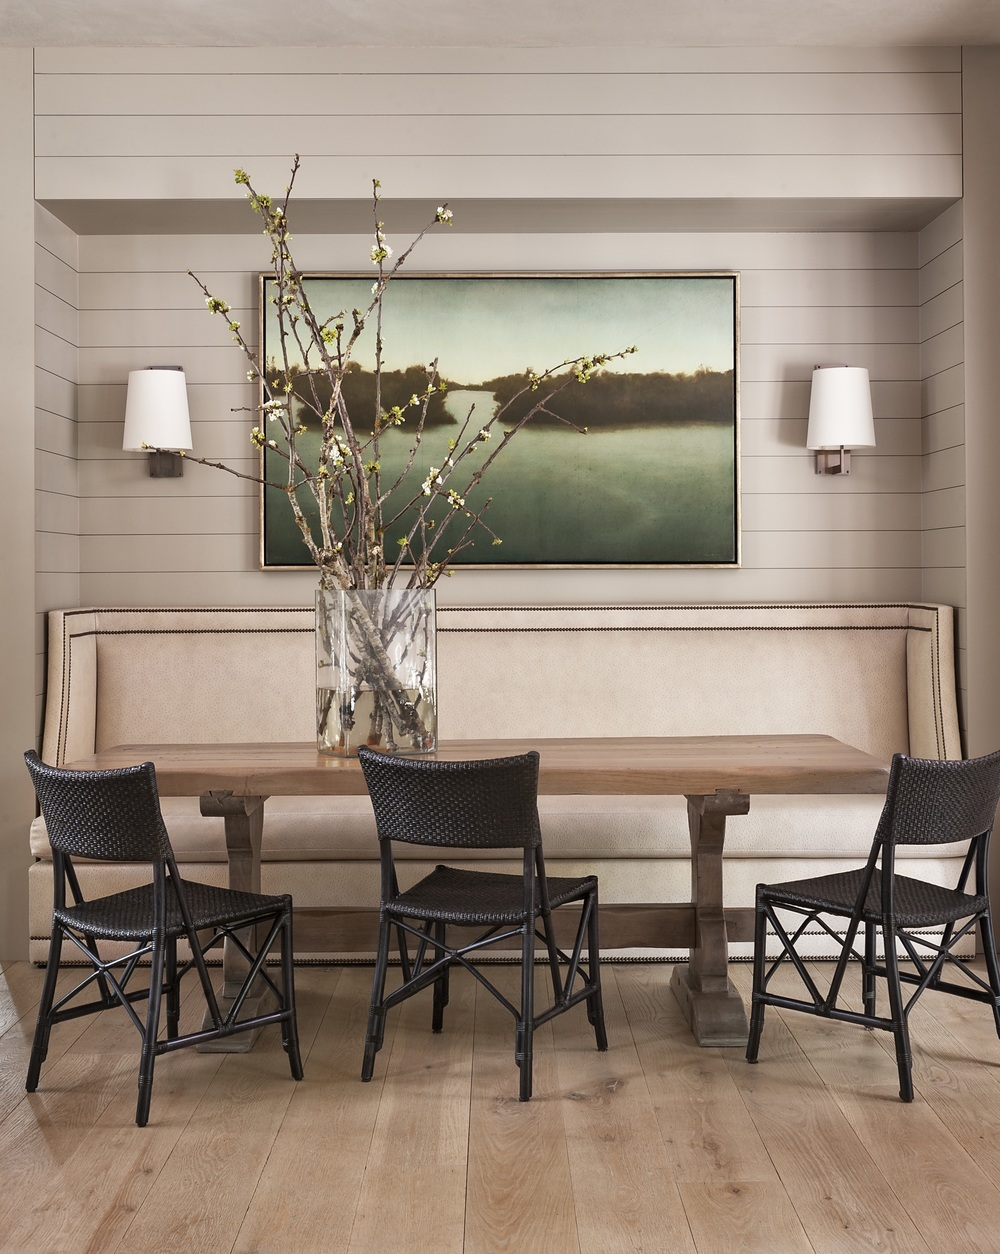 Breakfast room_151.jpg